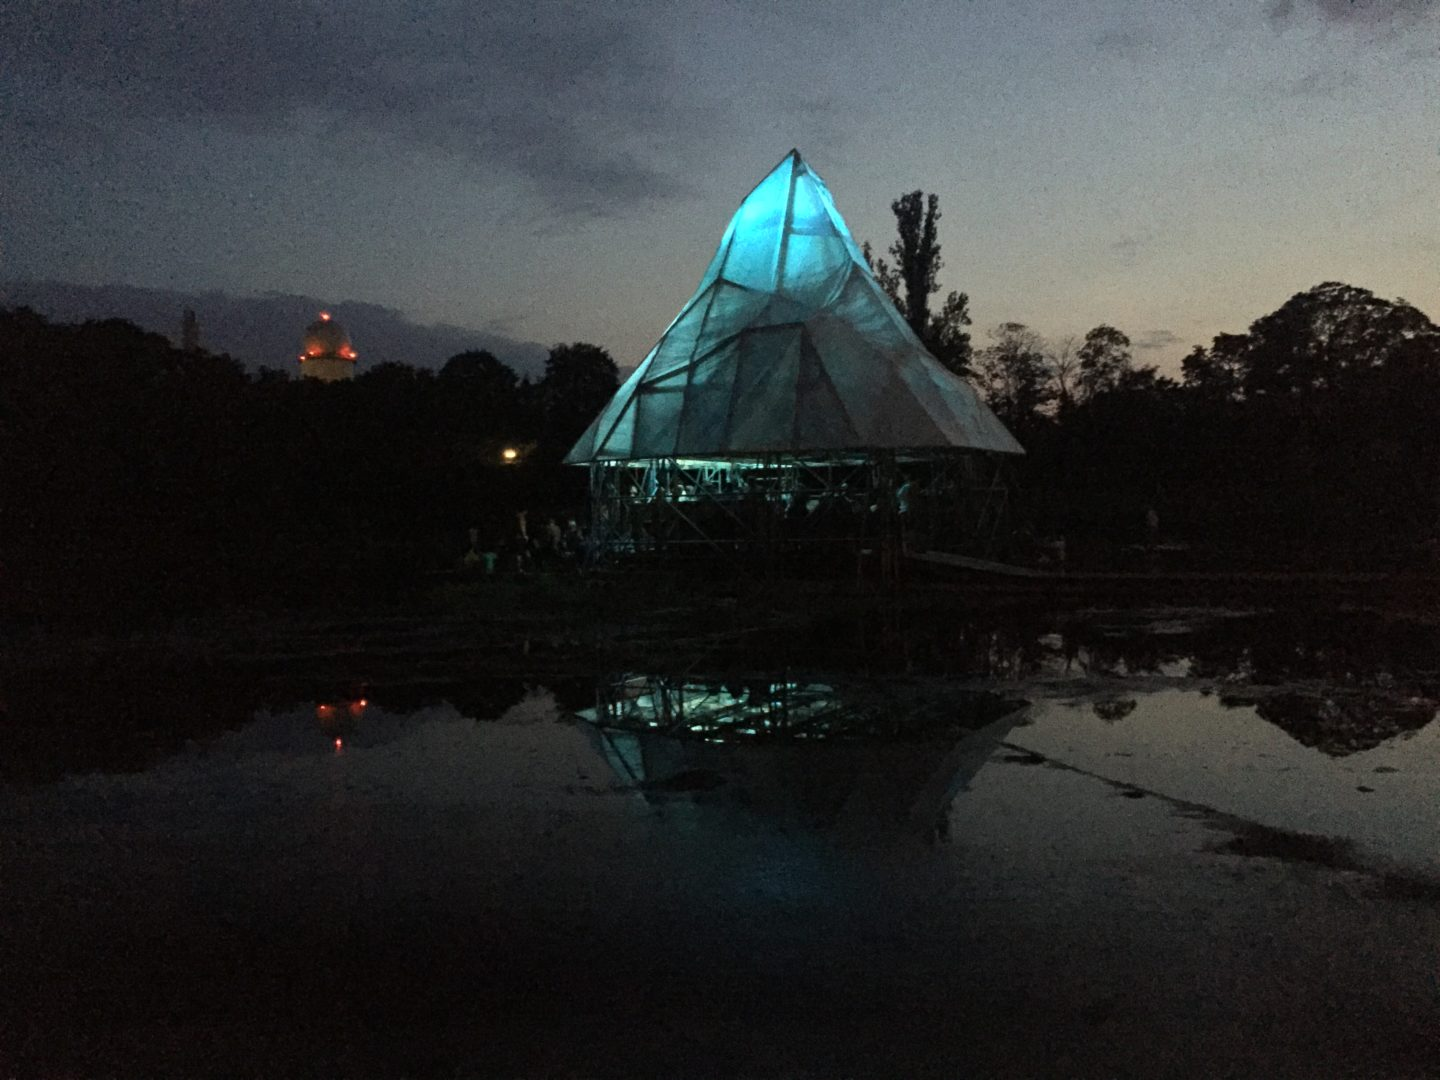 The Floating University pictured at night. The depicted structure is illuminated light blue and resembles an iceberg. It is surrounded by darkness. Water in the foreground reflects the light.